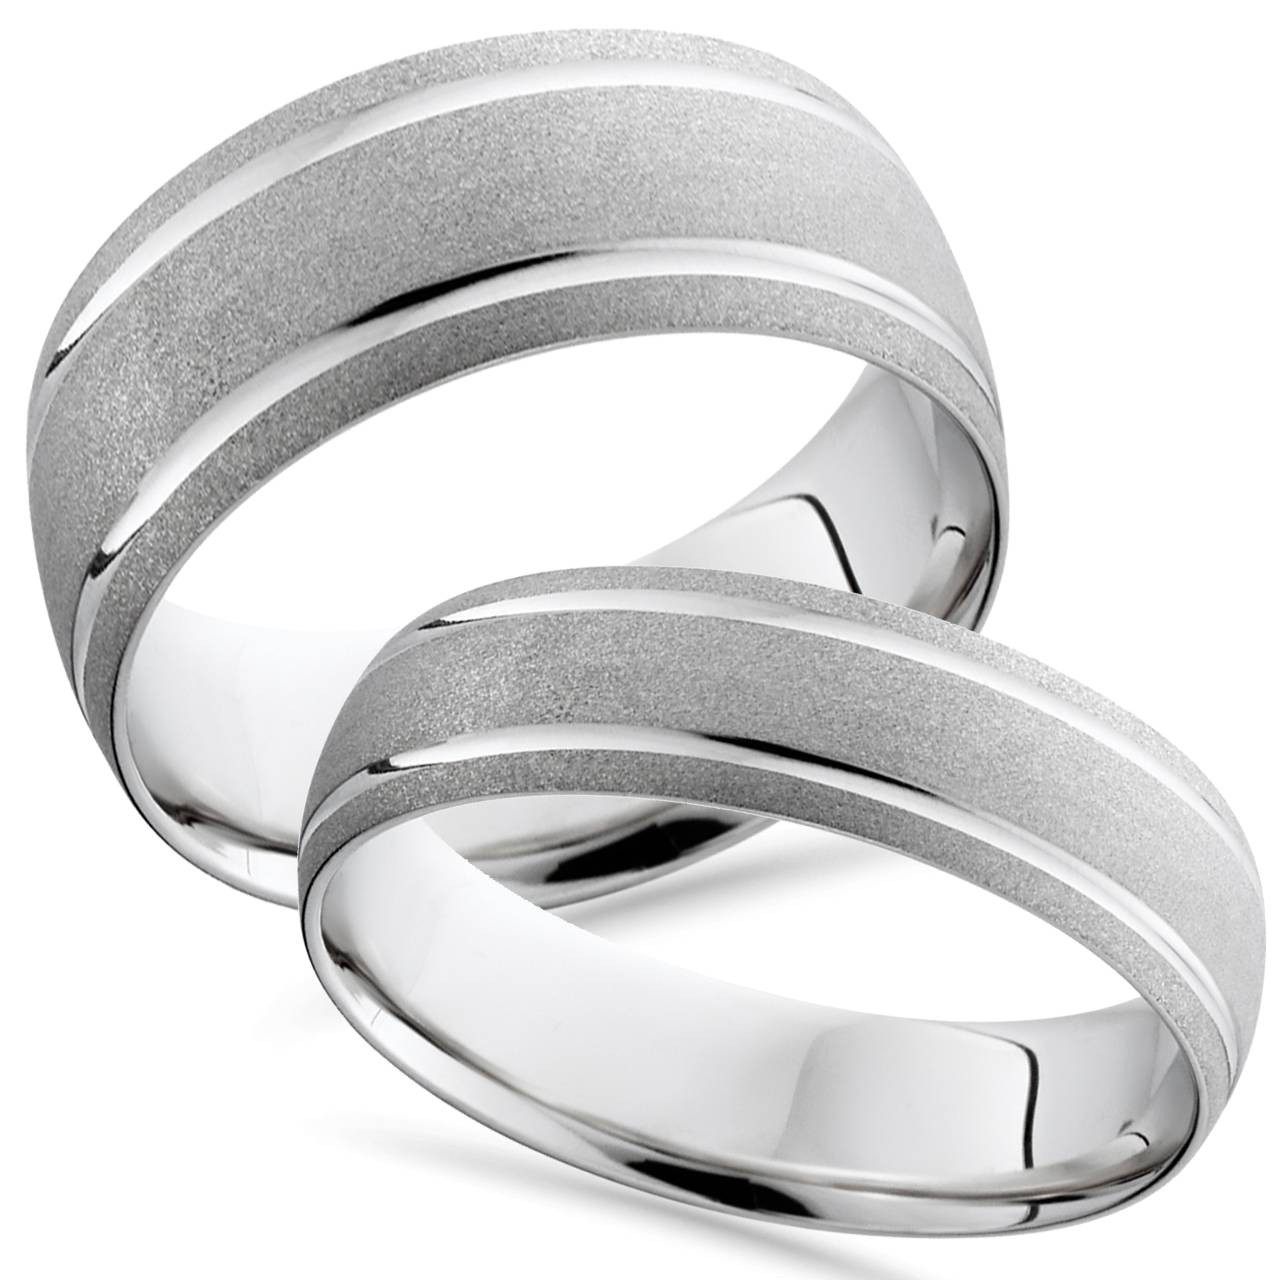 His And Hers Matching Wedding Bands Cheap.14k White Gold Matching His Hers Brushed Comfort Fit Wedding Band